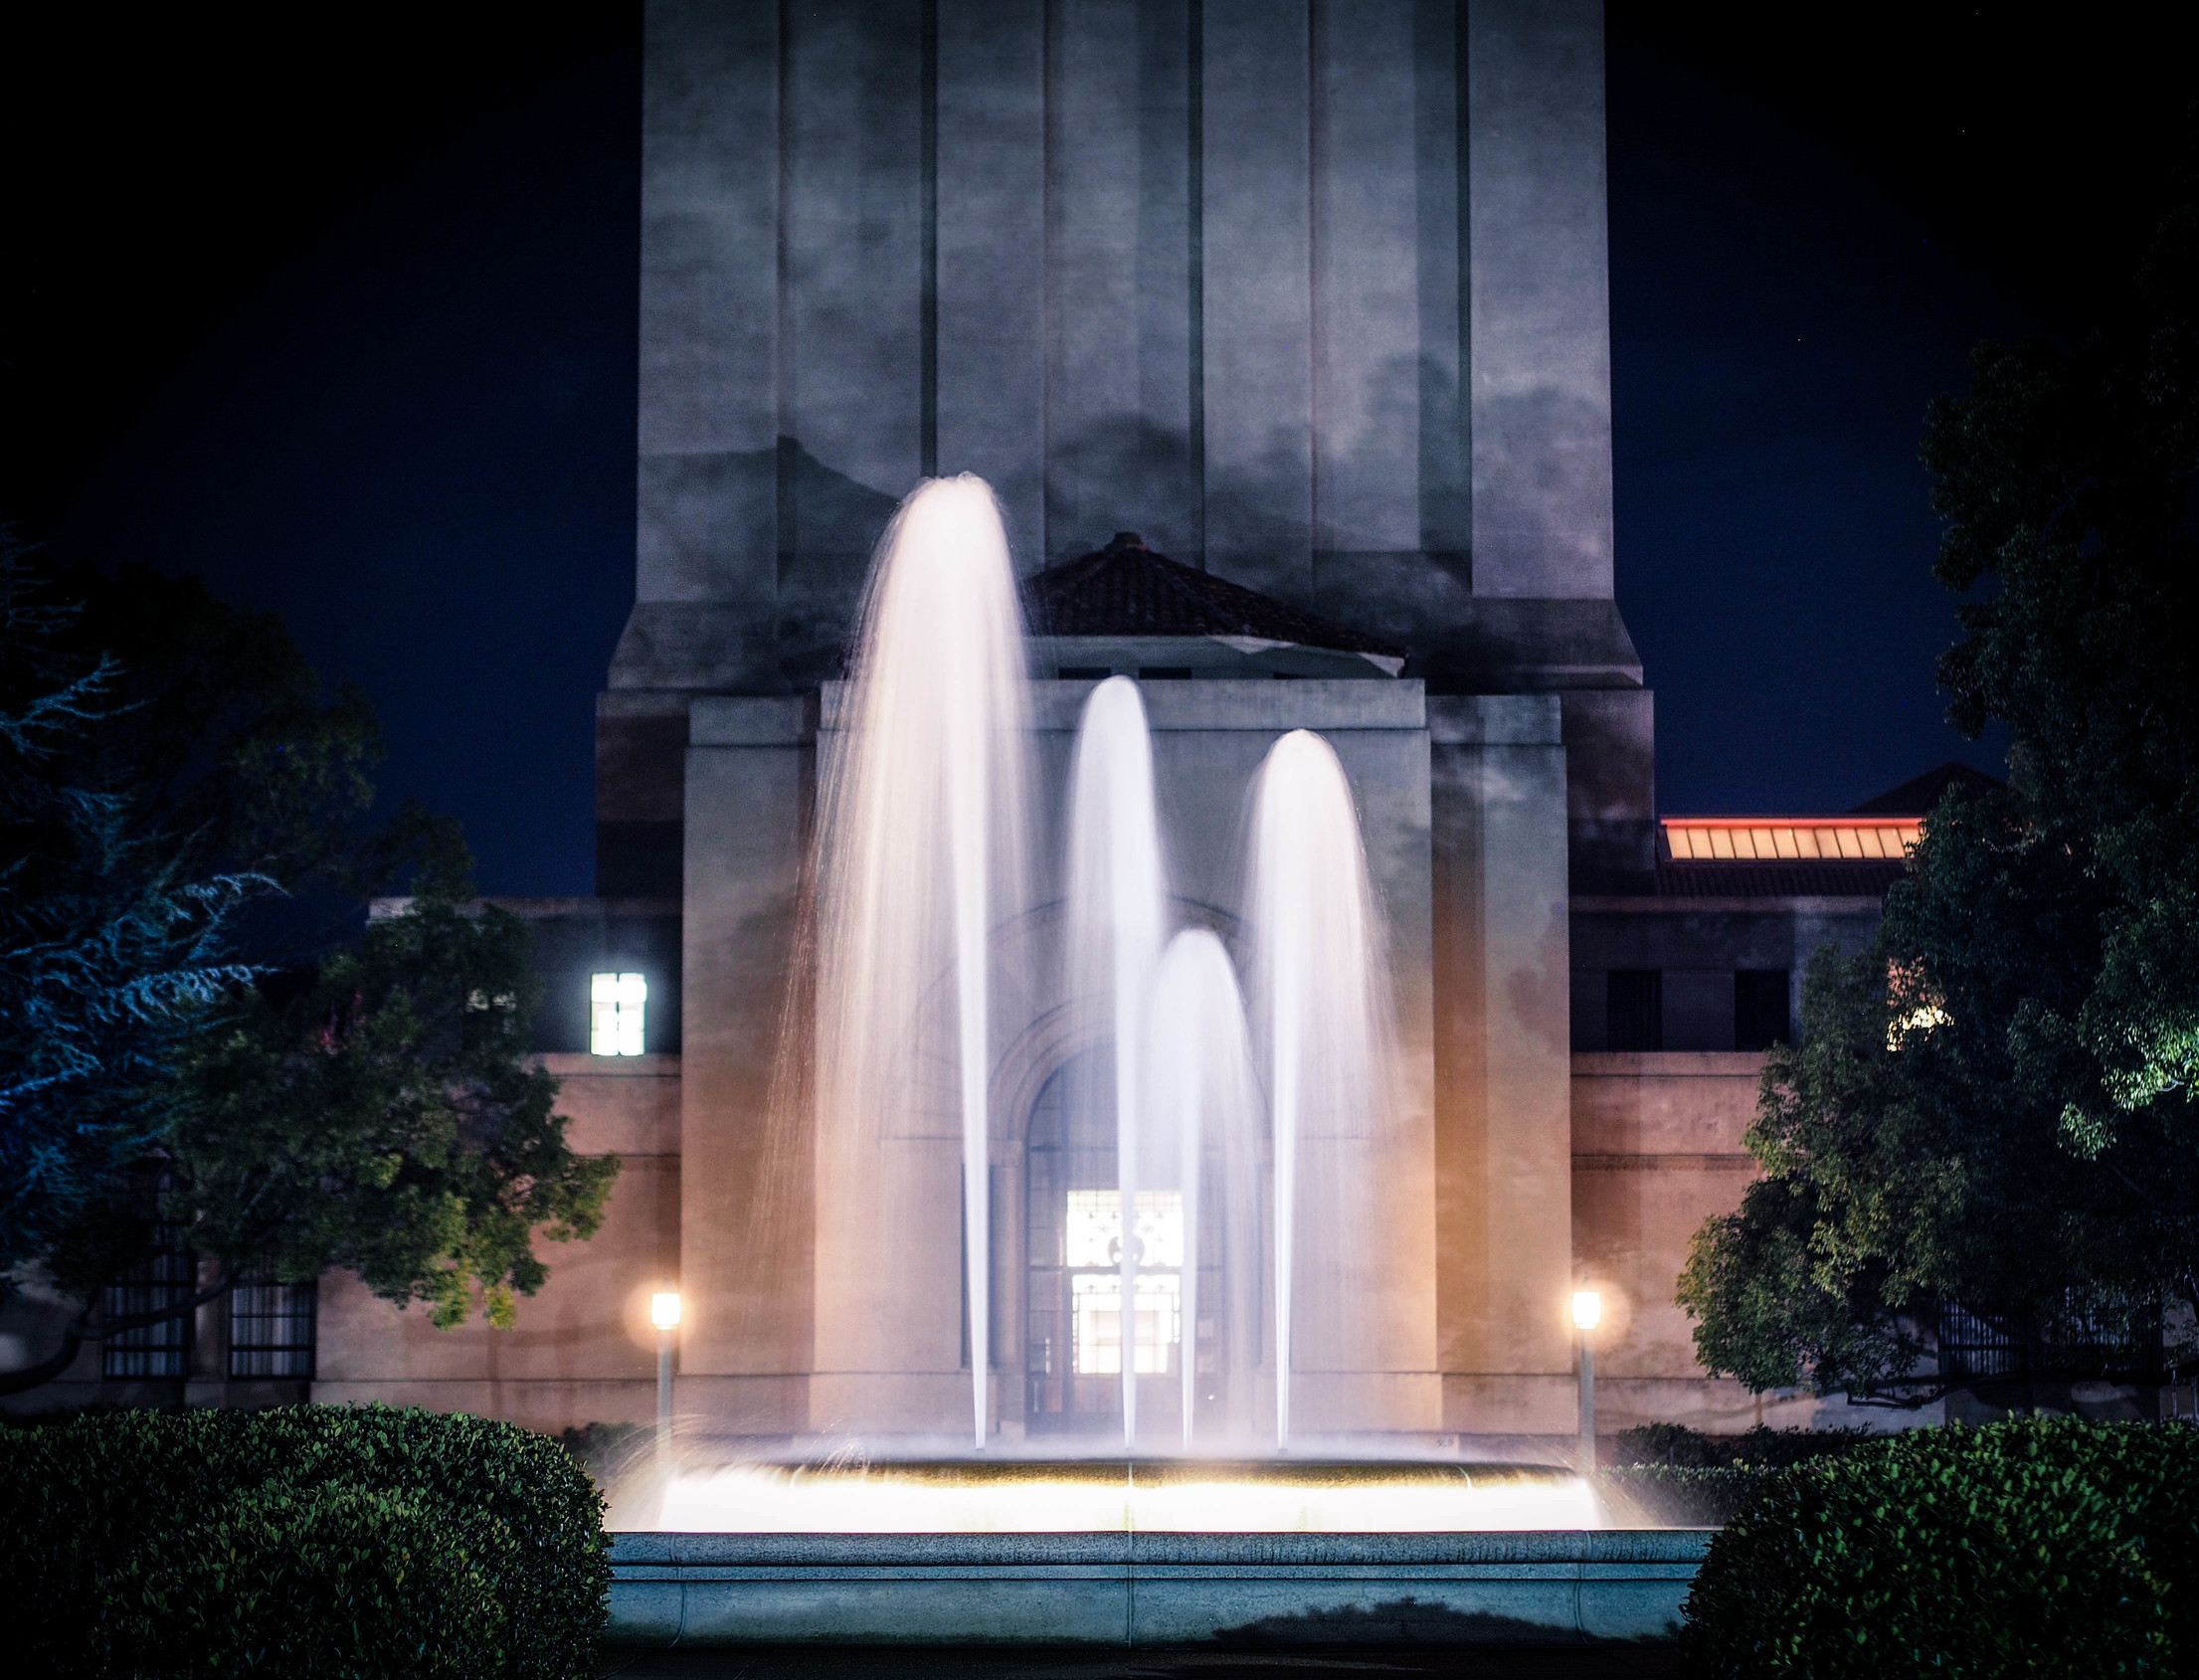 Stanford fountain in front of Hoover tower